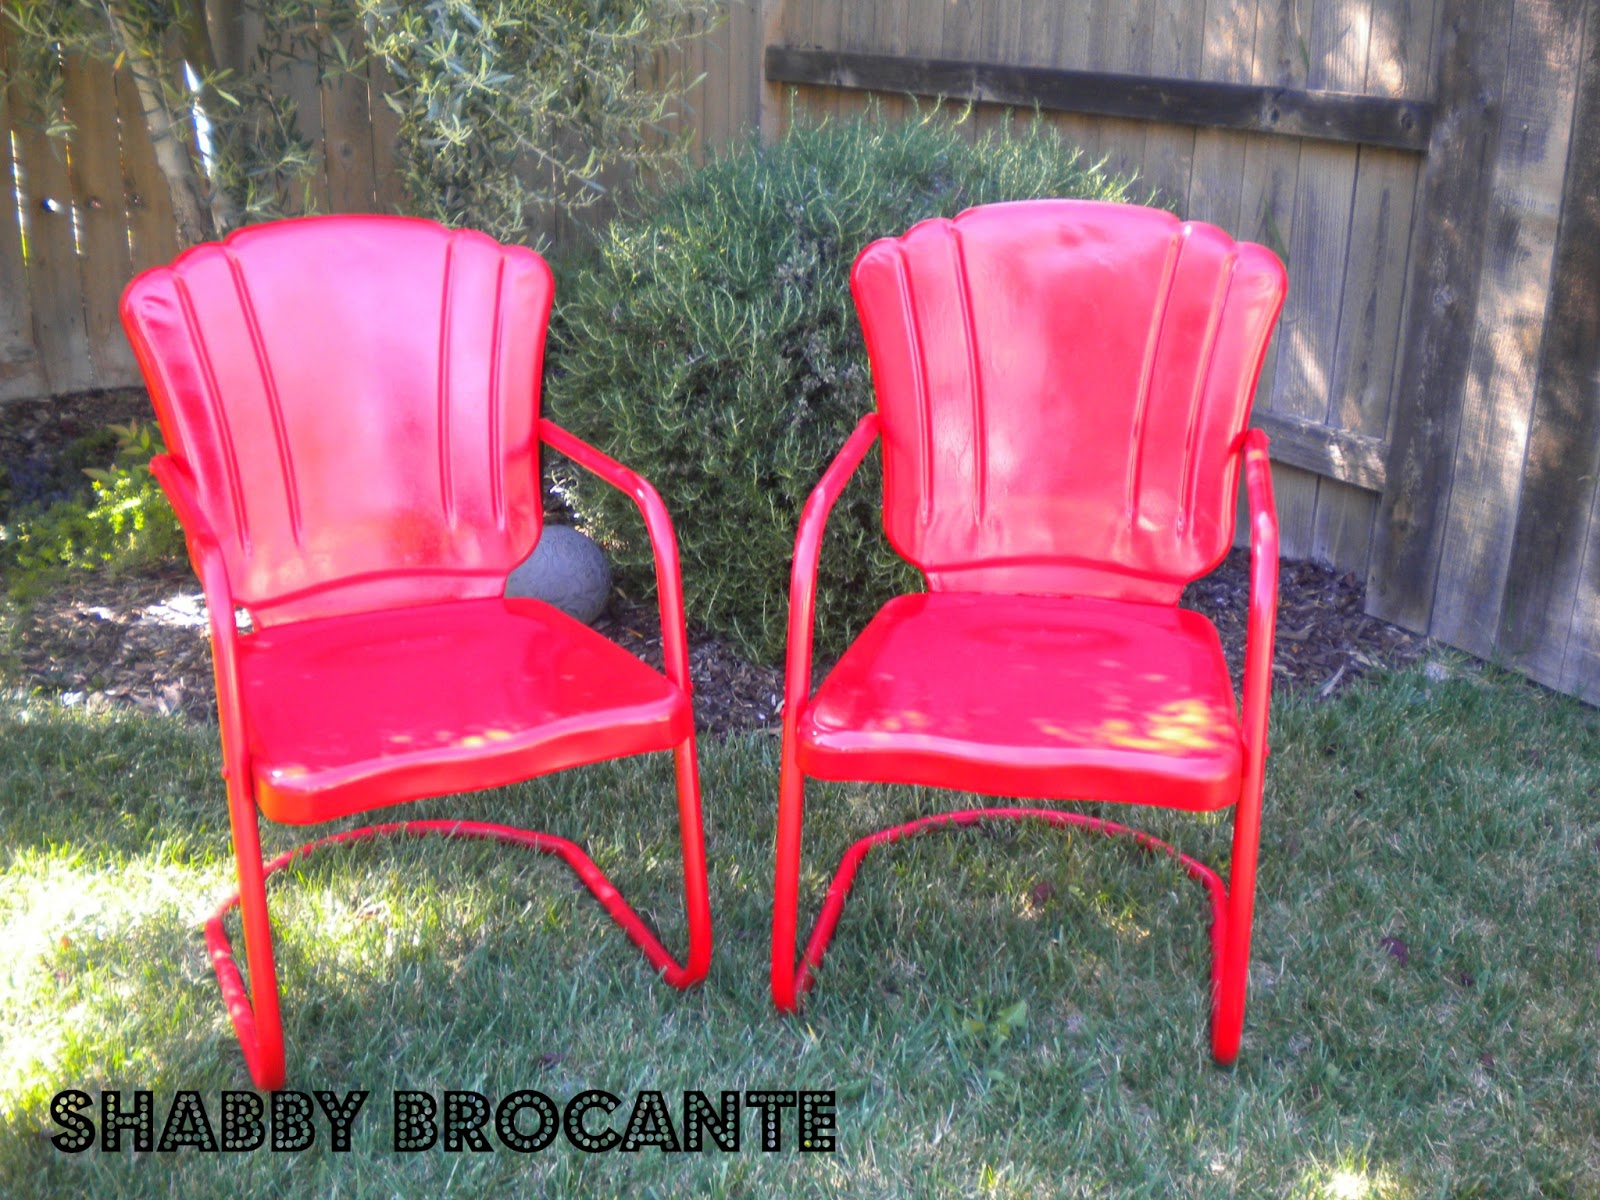 Aluminum Lawn Chairs Shabby Brocante Vintage Metal Lawn Chairs